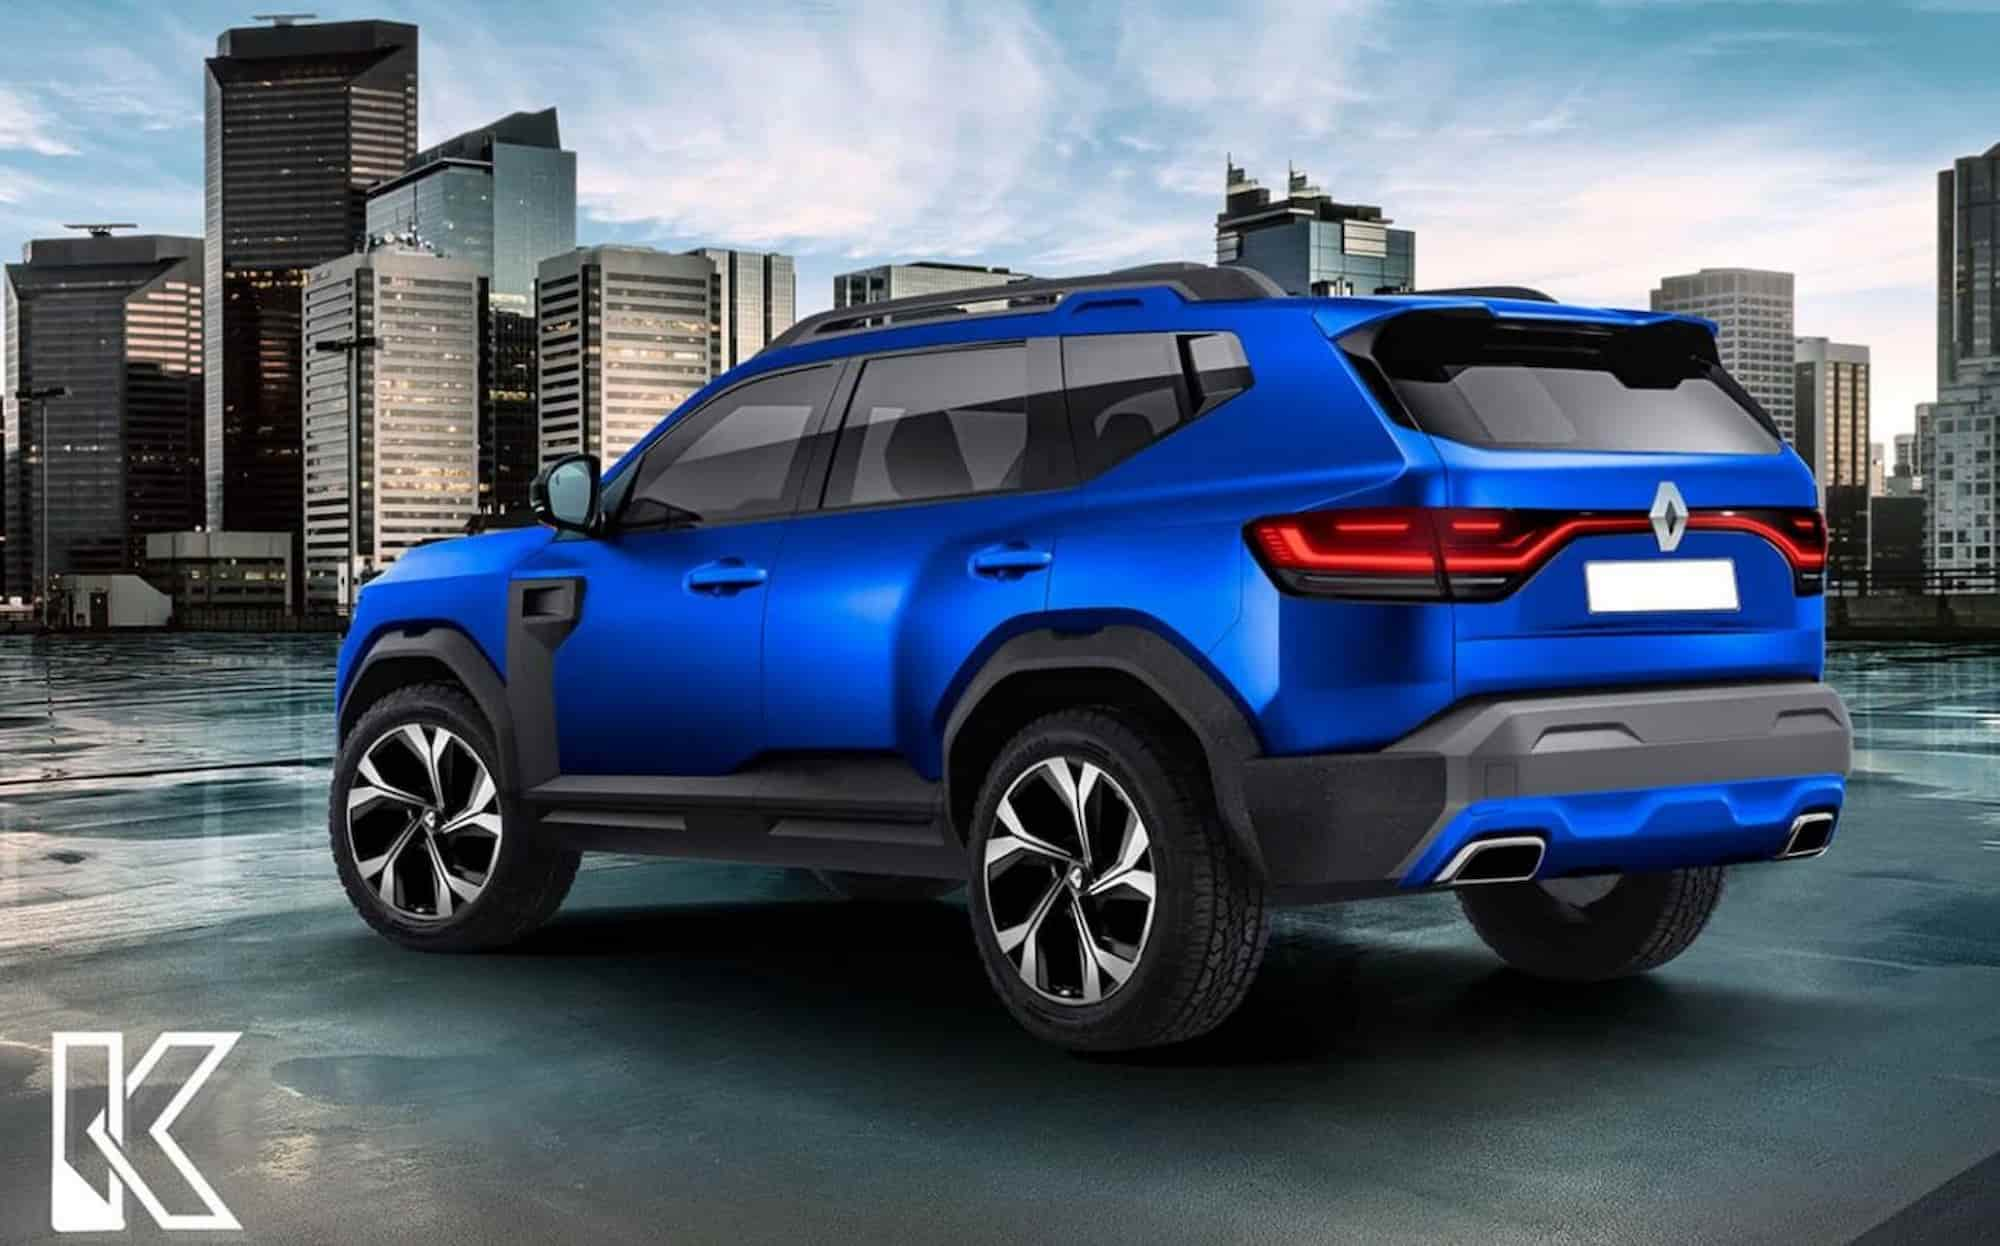 Dacia Bigster Renault Duster 7 seater rendering rear 1536x1023 1